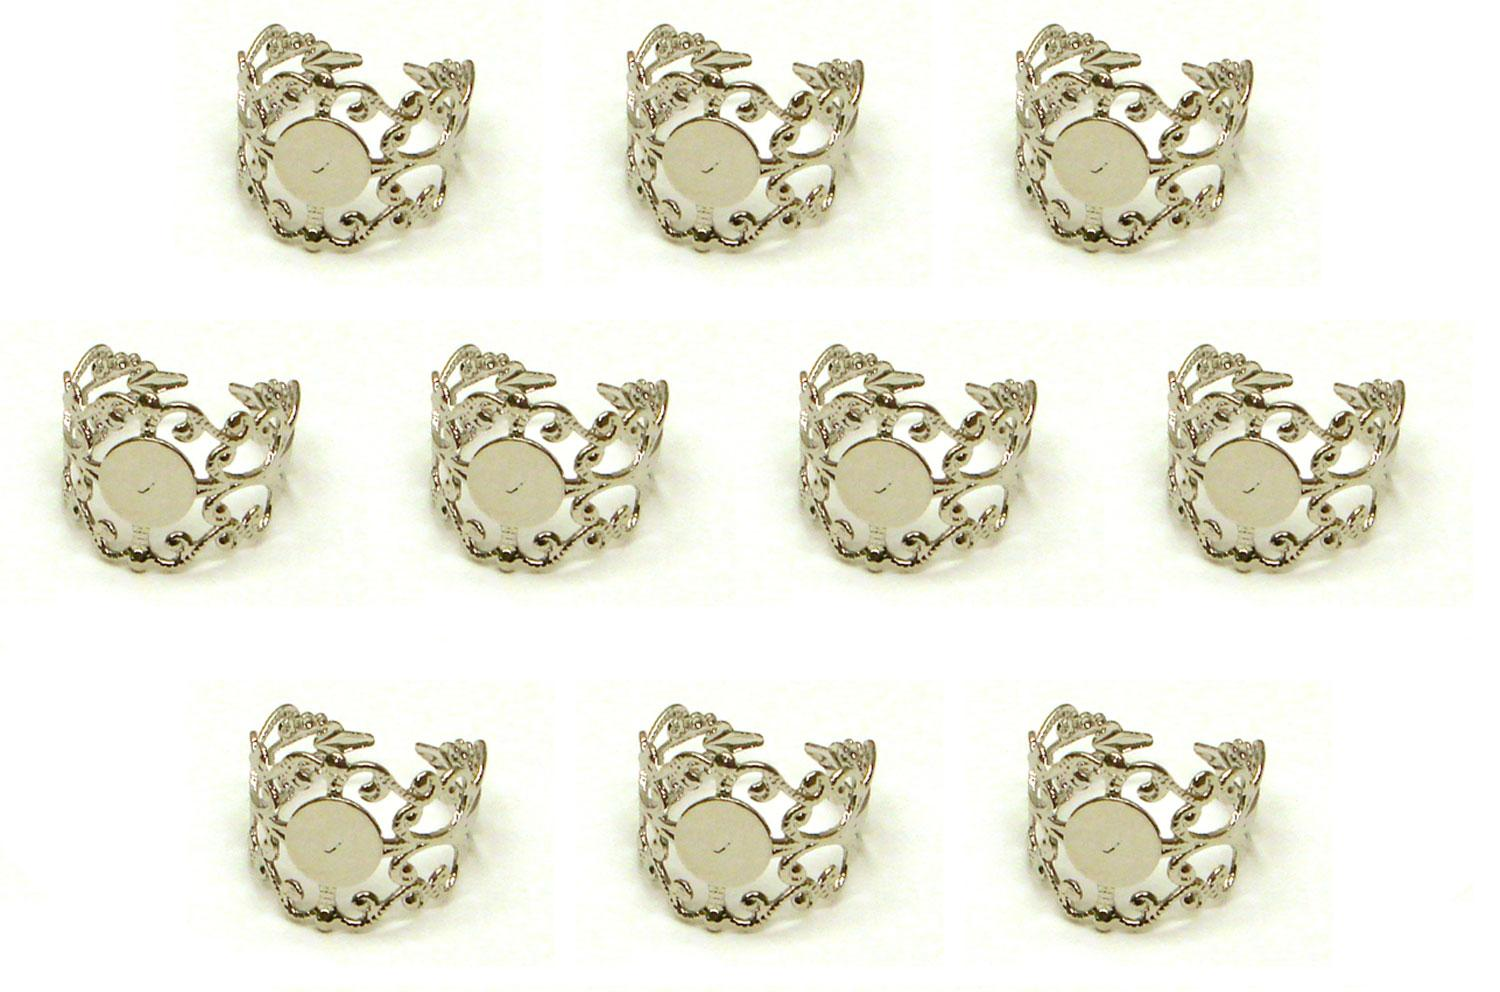 Sterling Silver Plated Adjustable Filigree Rings - 10 Pack